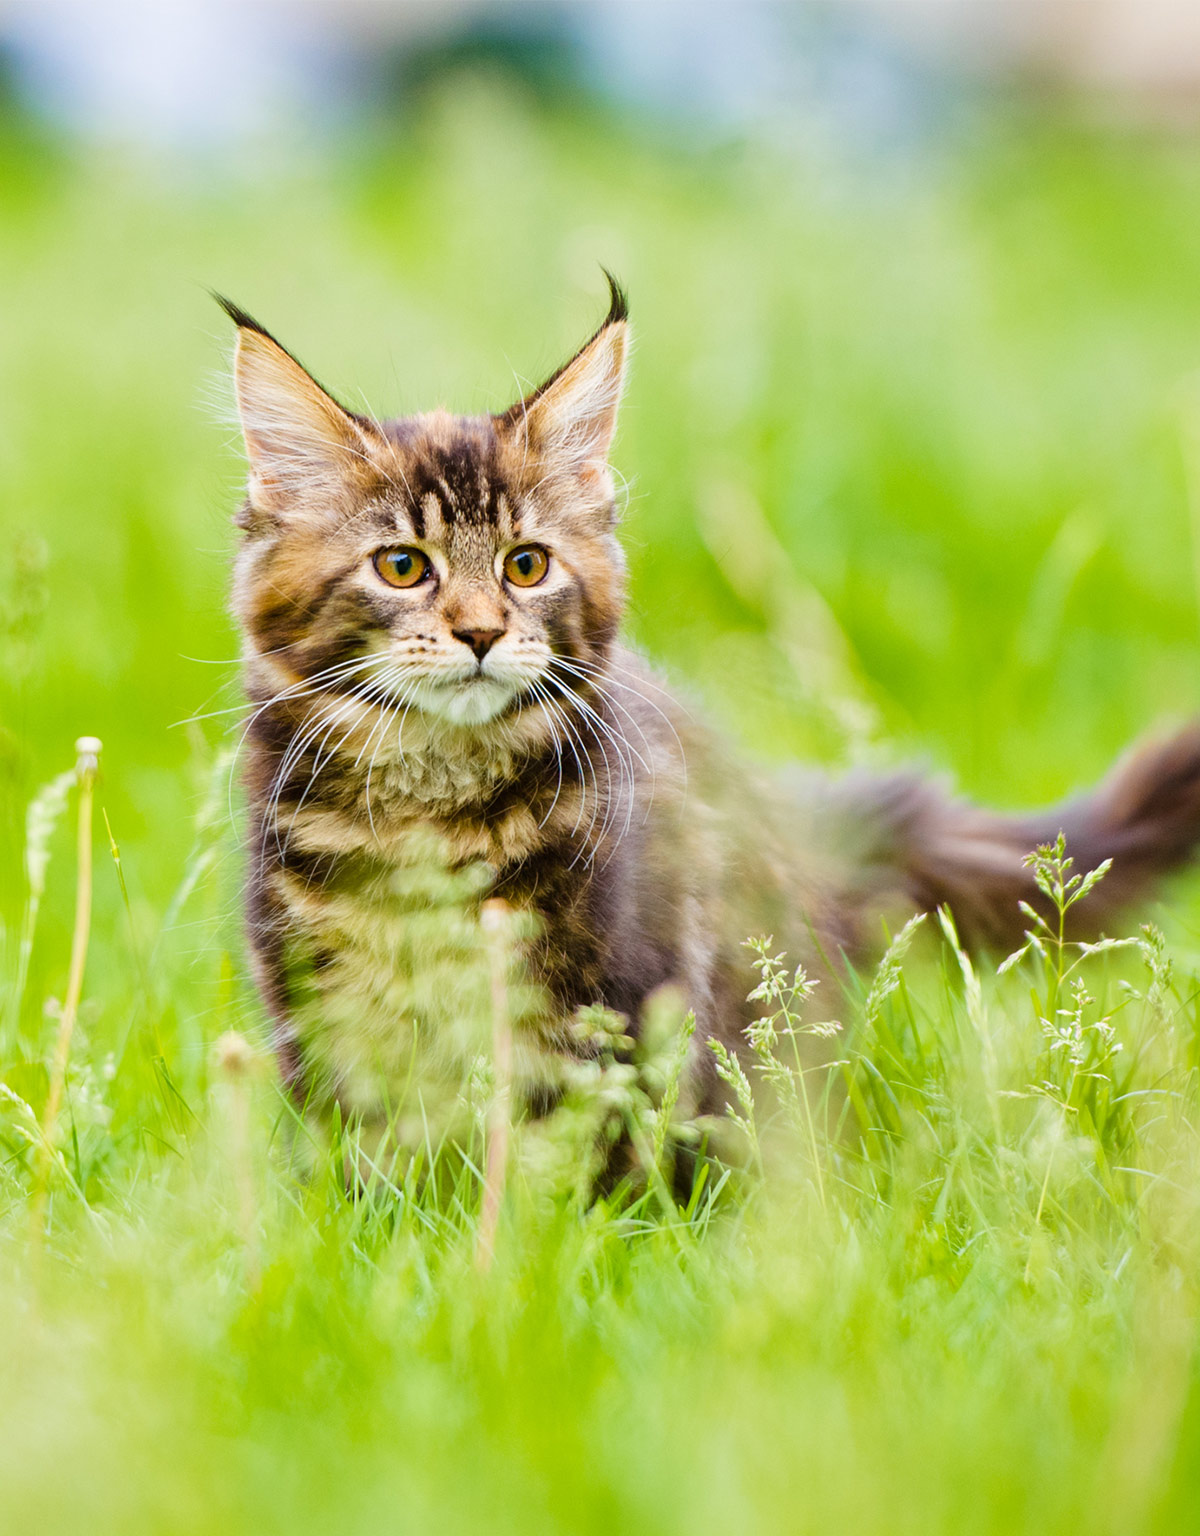 When do Maine Coon cats stop growing?